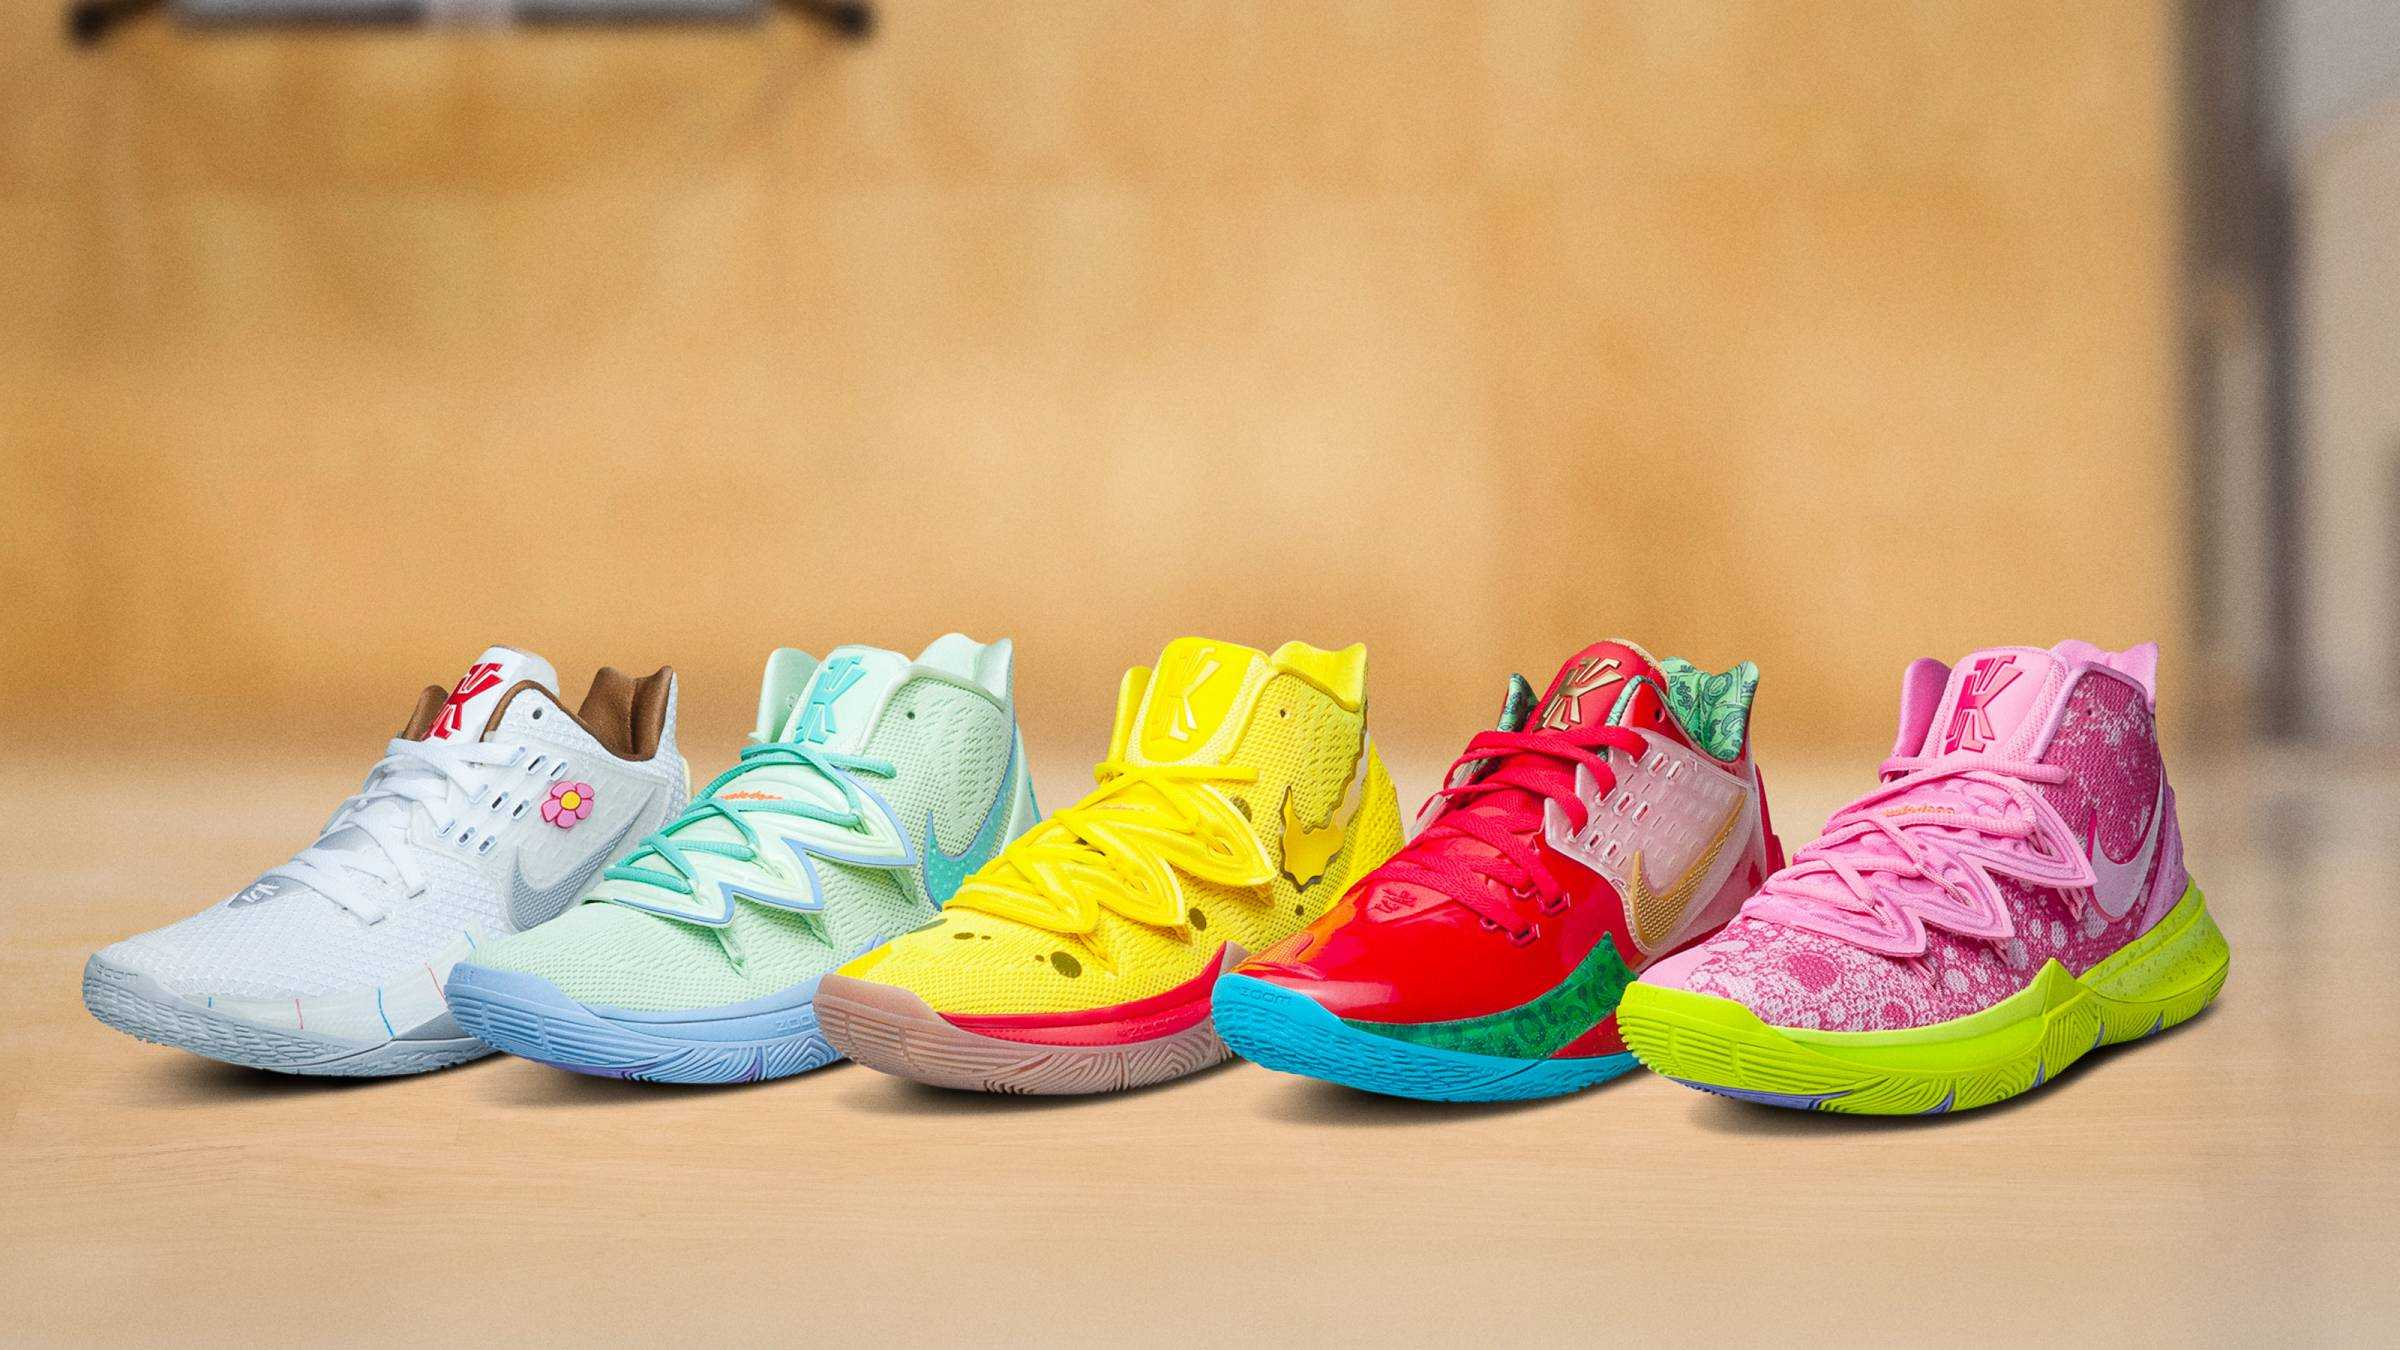 NIKE AND VIACOM NICKELODEON CONSUMER PRODUCTS LAUNCH THE KYRIE X SPONGEBOB SQUAREPANTS COLLECTION [Sneakers]